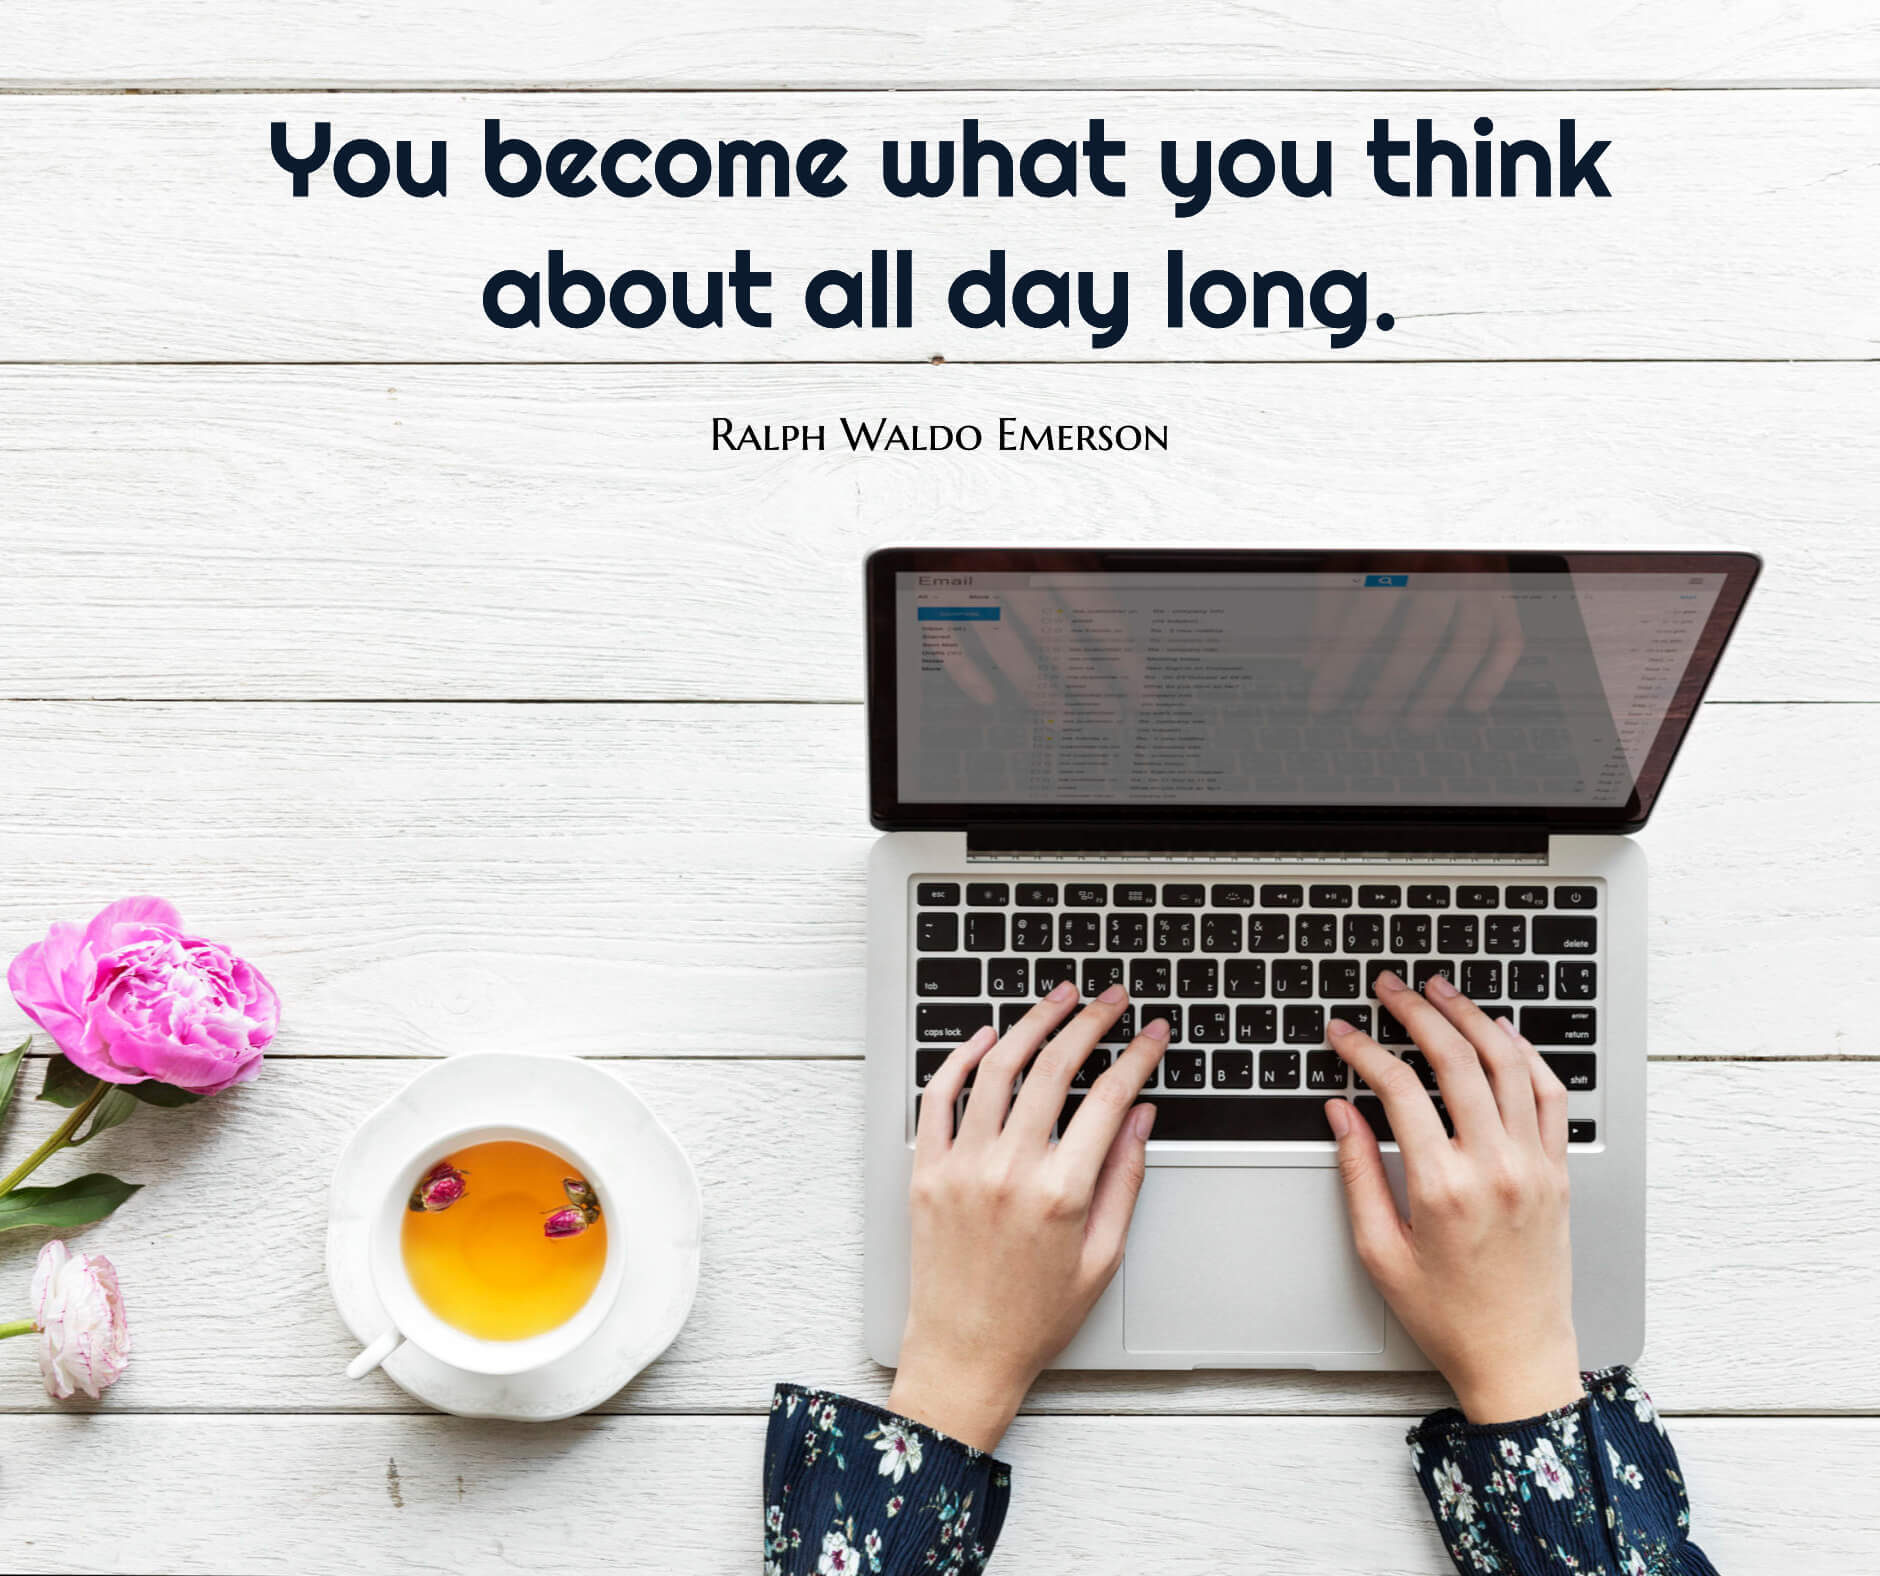 You become what you think about all day long.